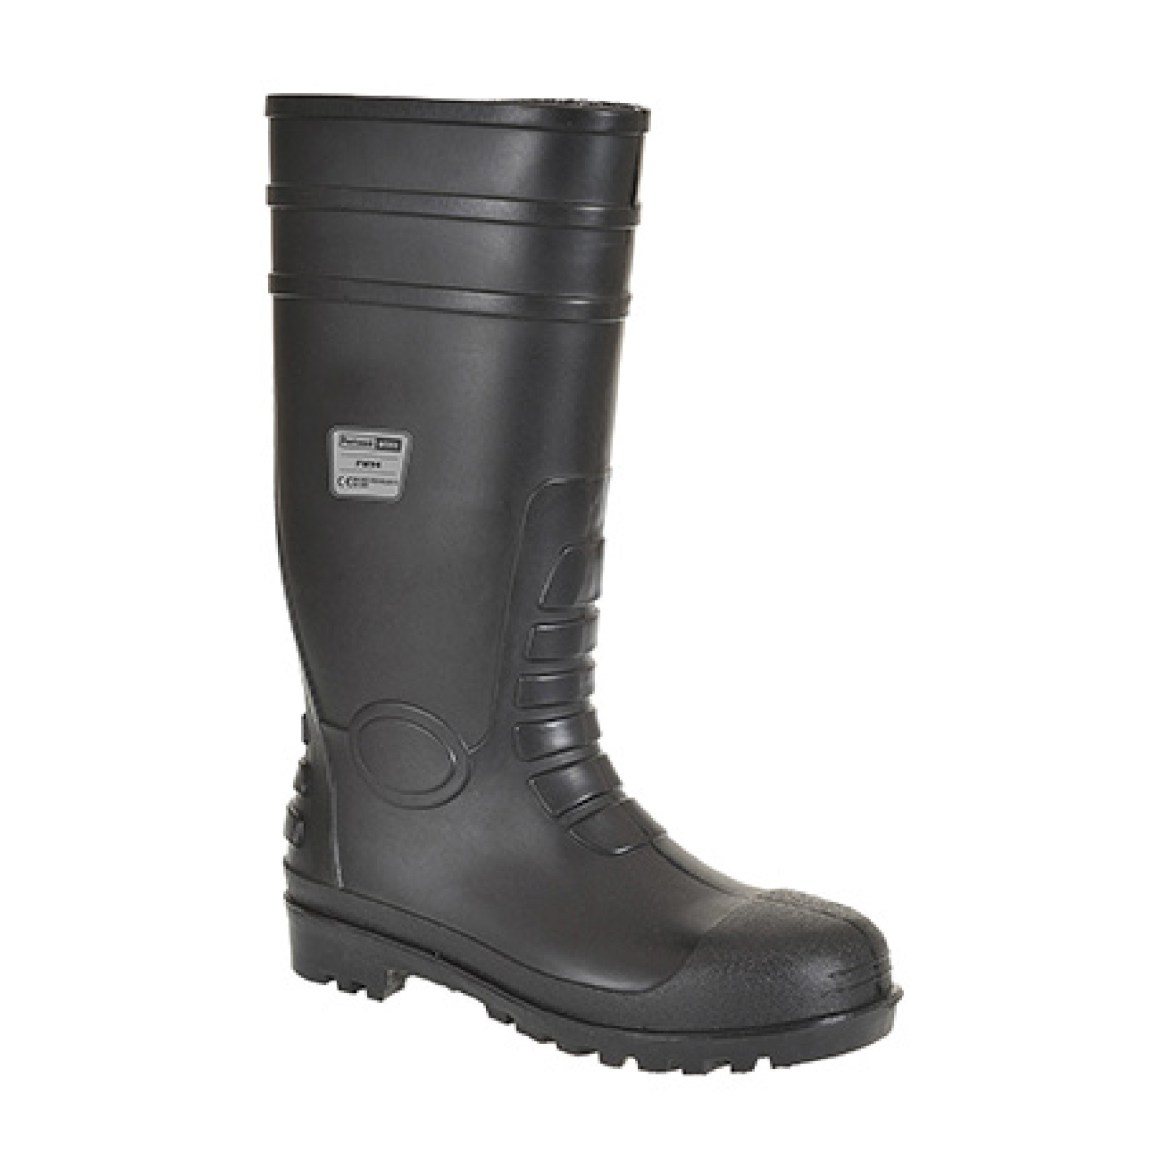 Redrok Workwear Centre Plymouth Classic Safety Wellington S4 - Black